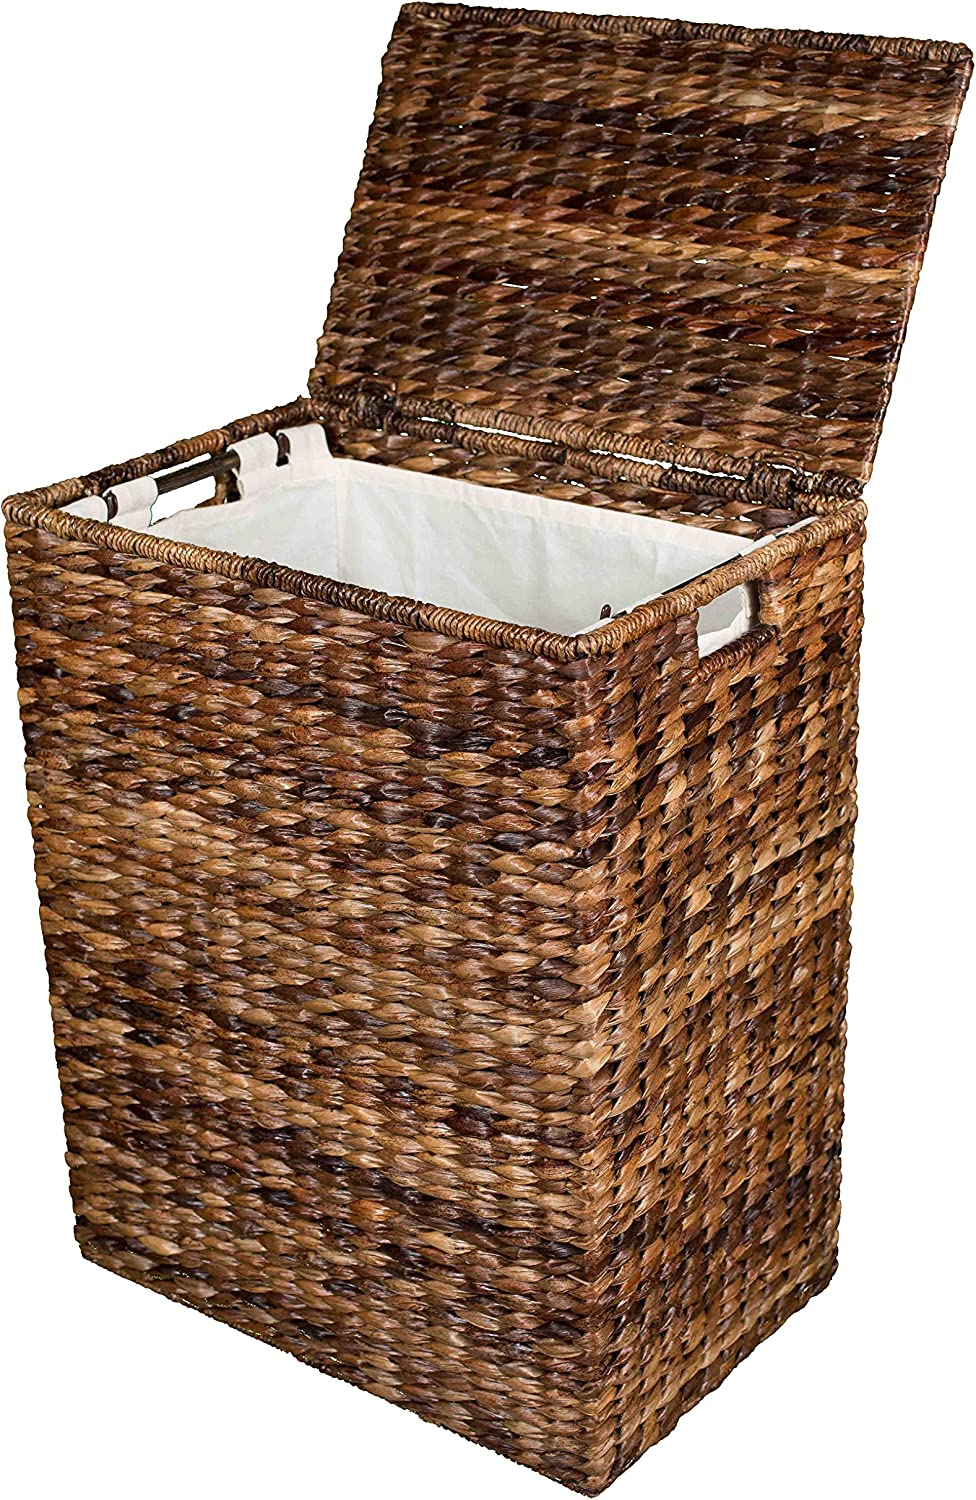 BirdRock Home Abaca Laundry Hamper - Hand Woven - Removable Canvas Laundry Bag